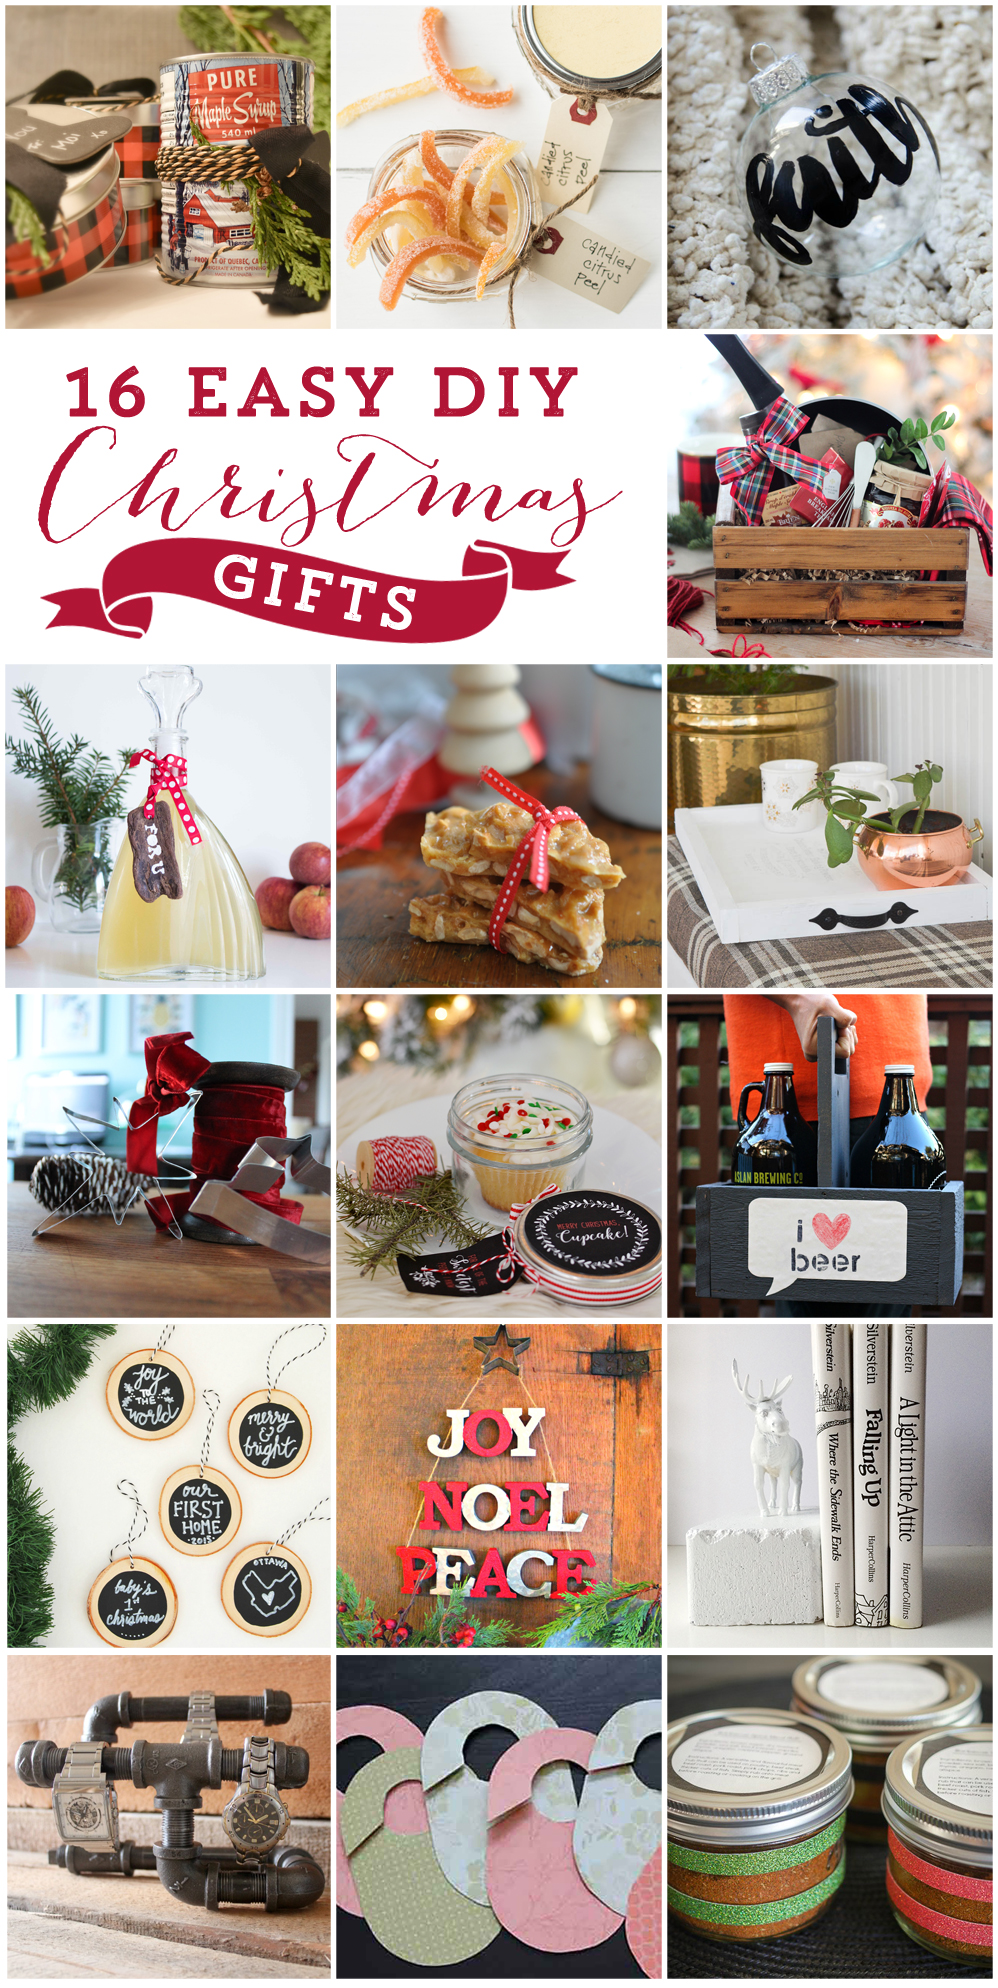 16 easy DIY Christmas gifts from favourite Canadian bloggers just in time for the holidays via @SustMyCraft.